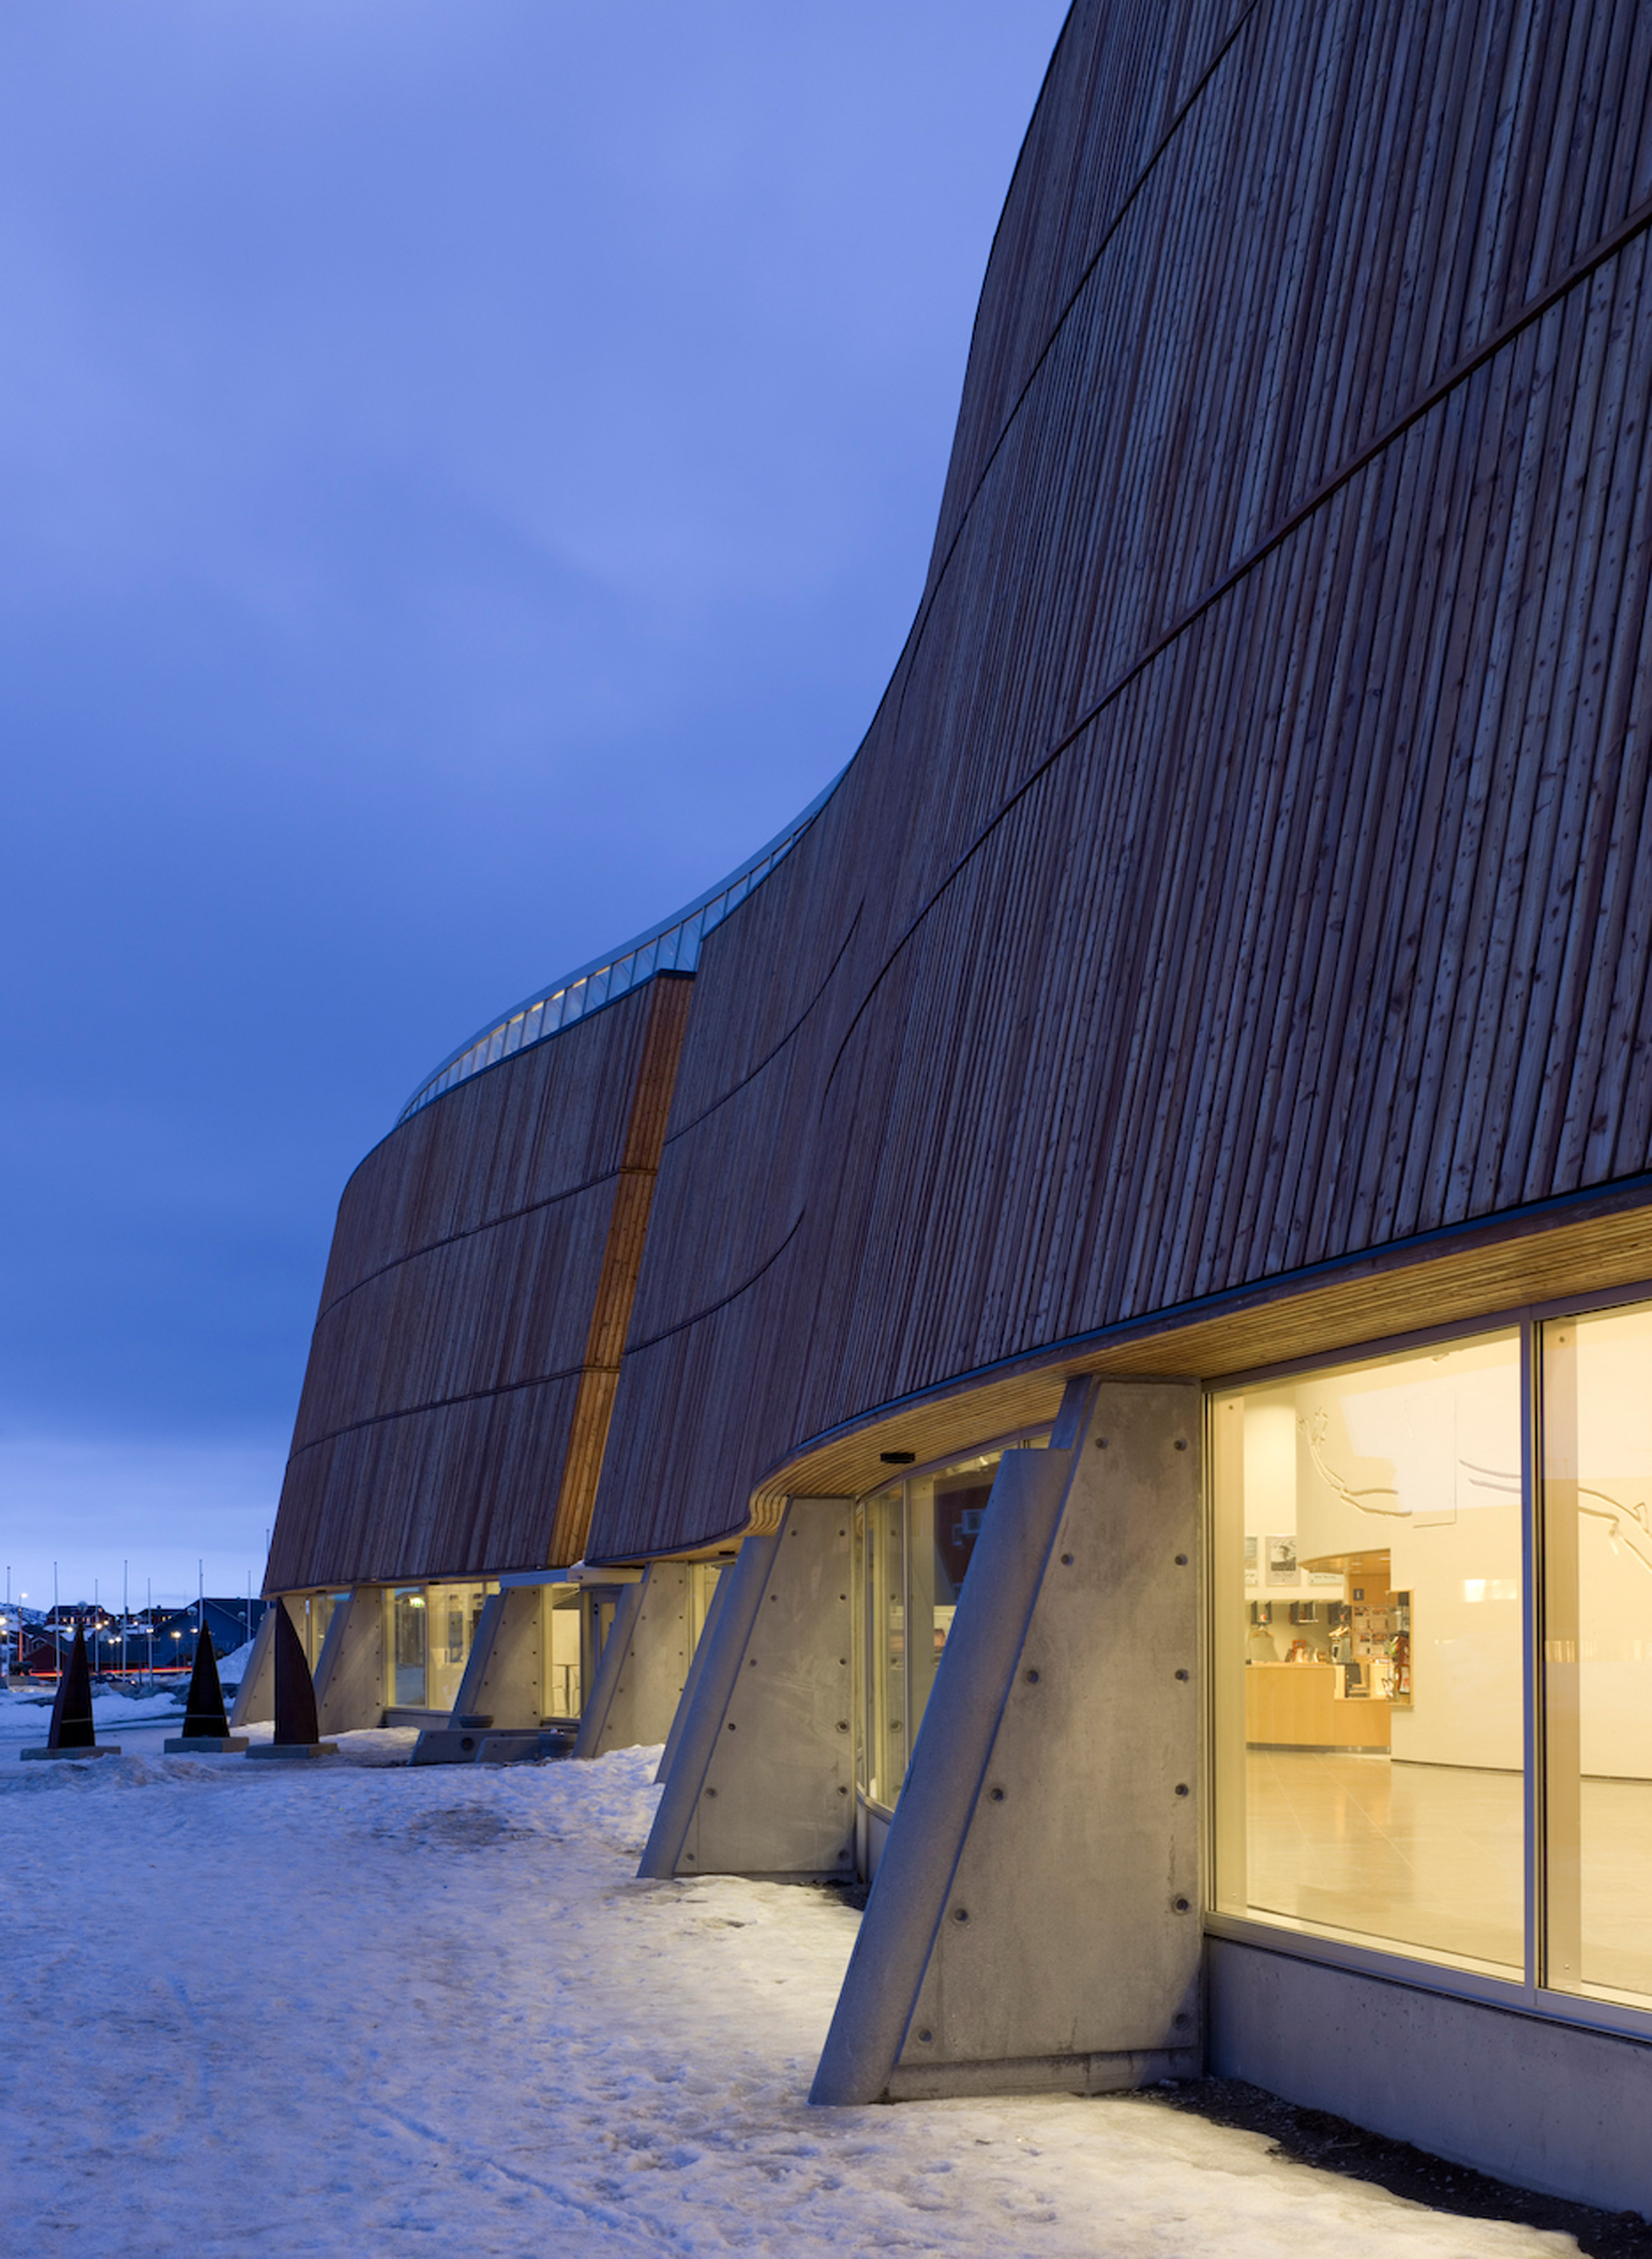 Schmidt Hammer Lassen reveals new images of Greenland cultural centre to mark its 20th anniversary